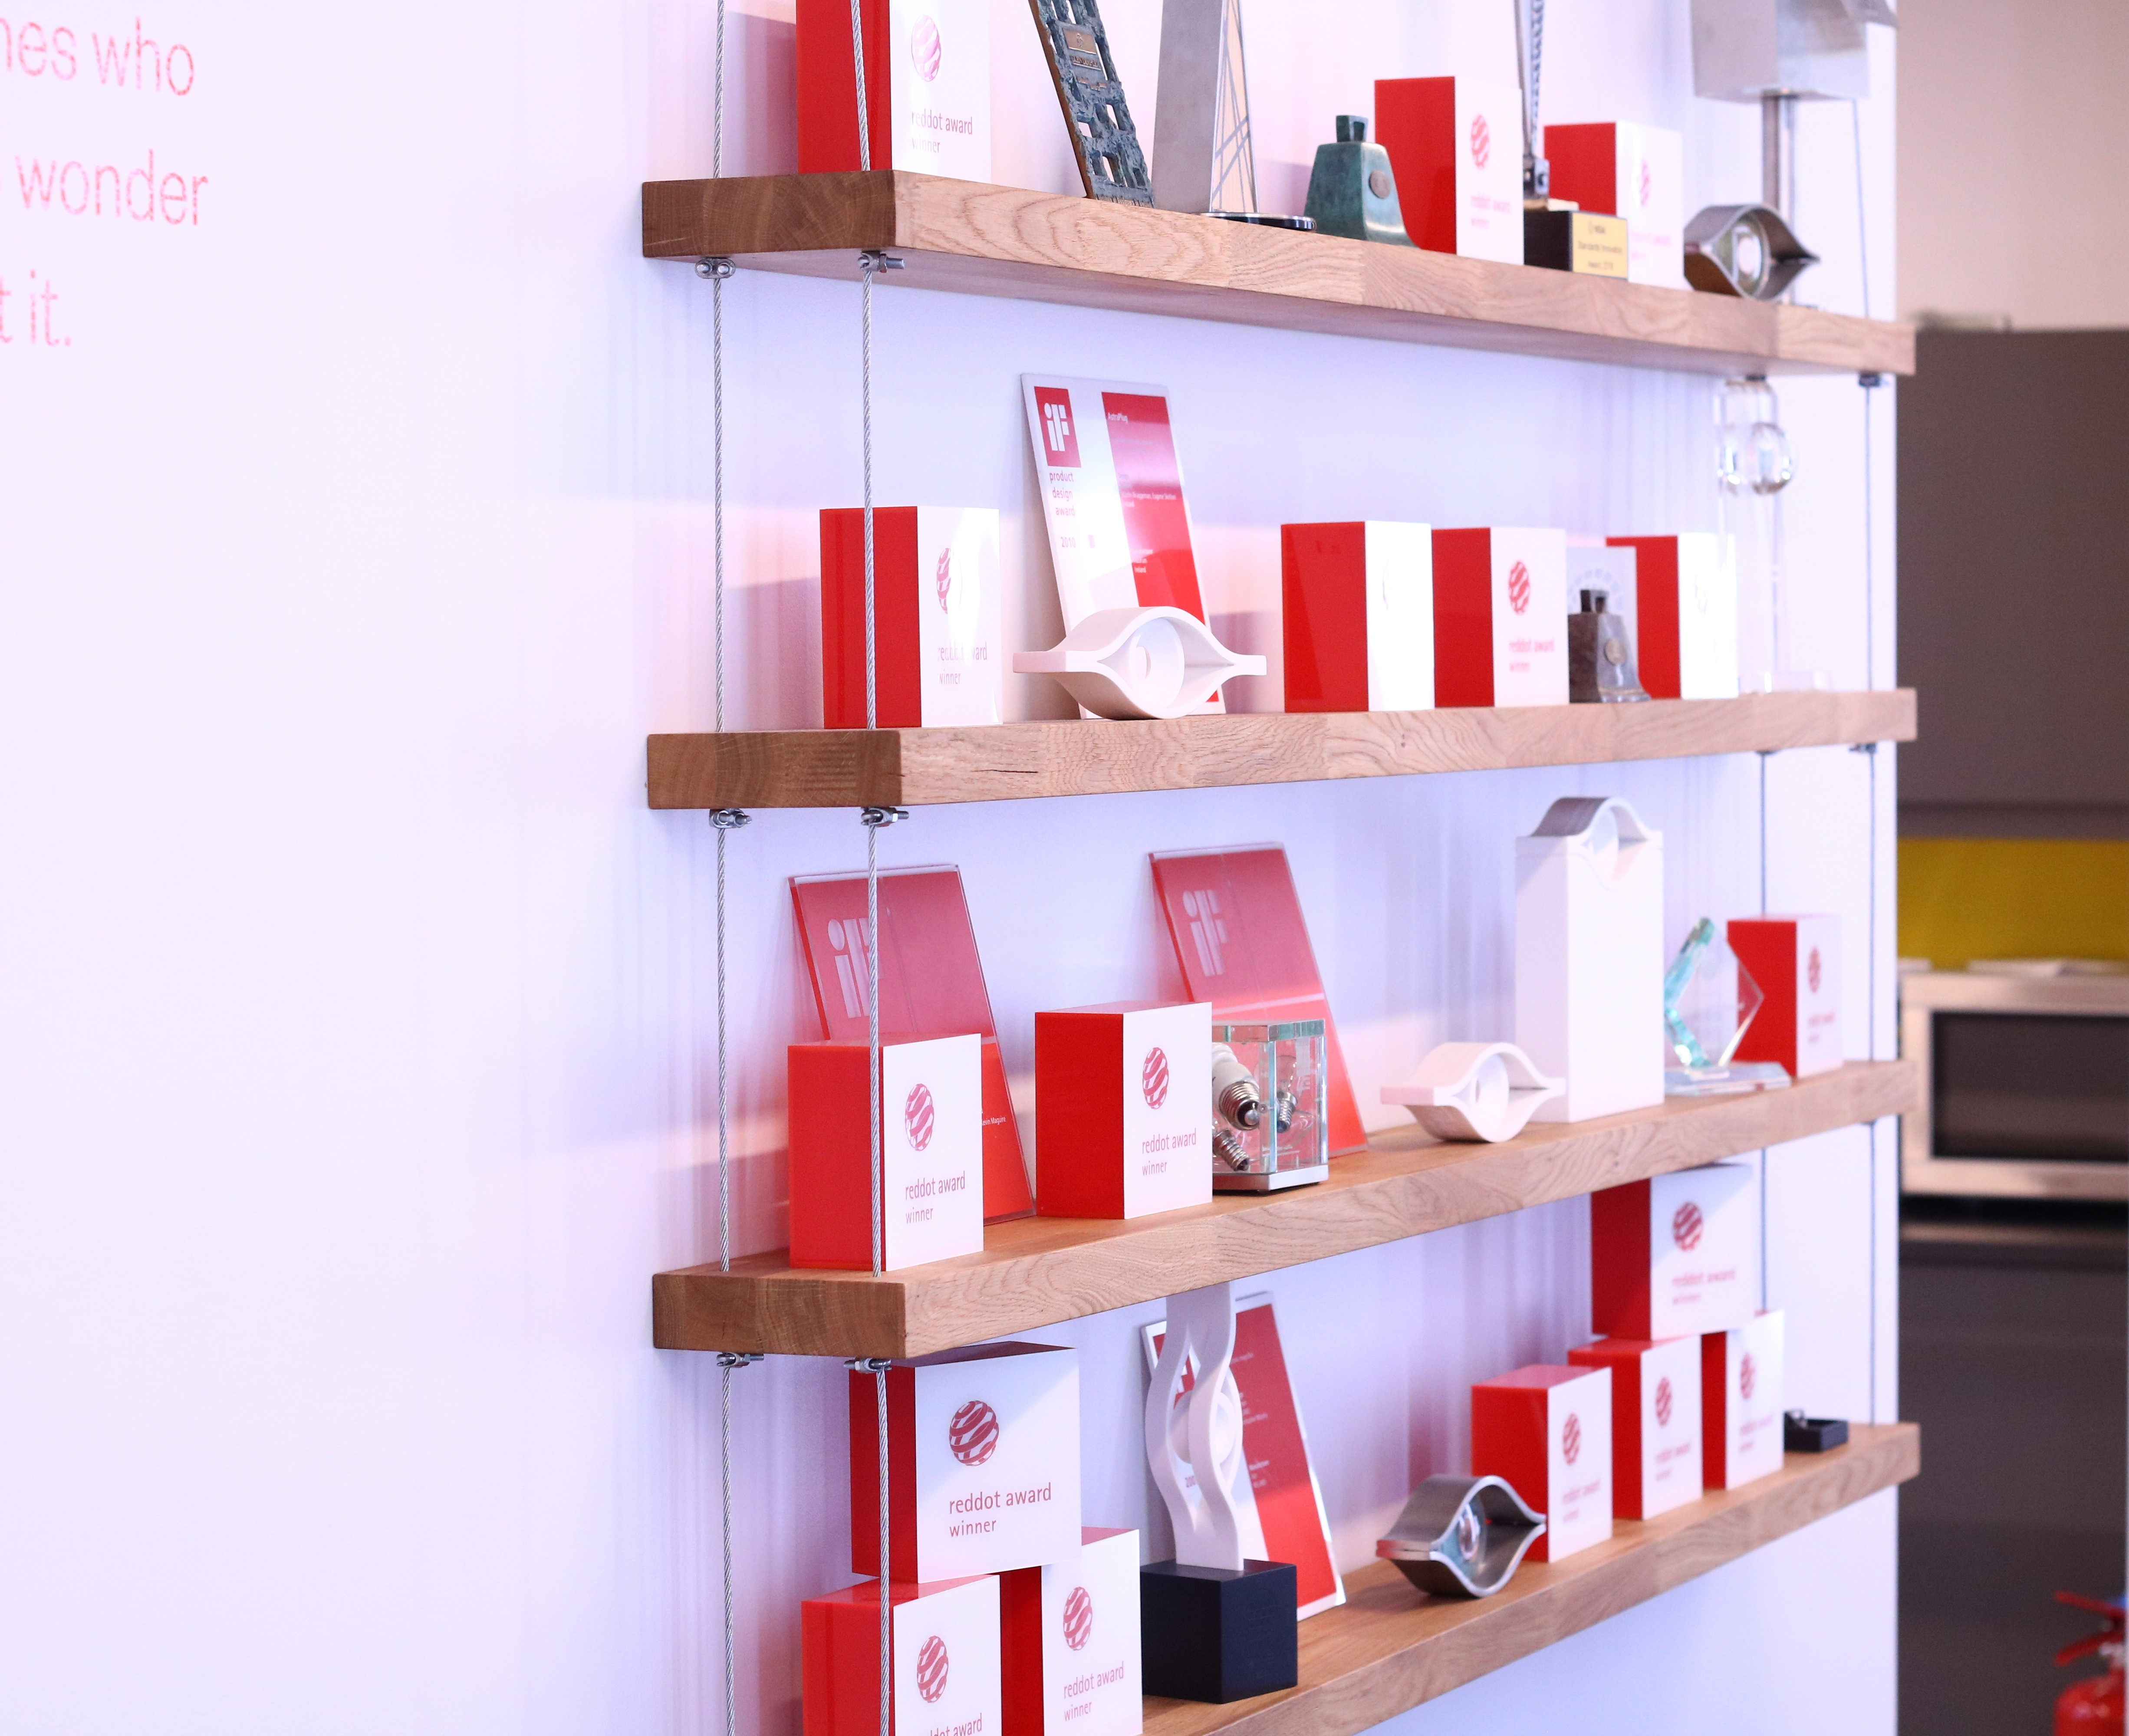 Award shelf at the Dolmen studio, there are awards from Red Dot, iF, ICAD, IDI and various other authorities on display.